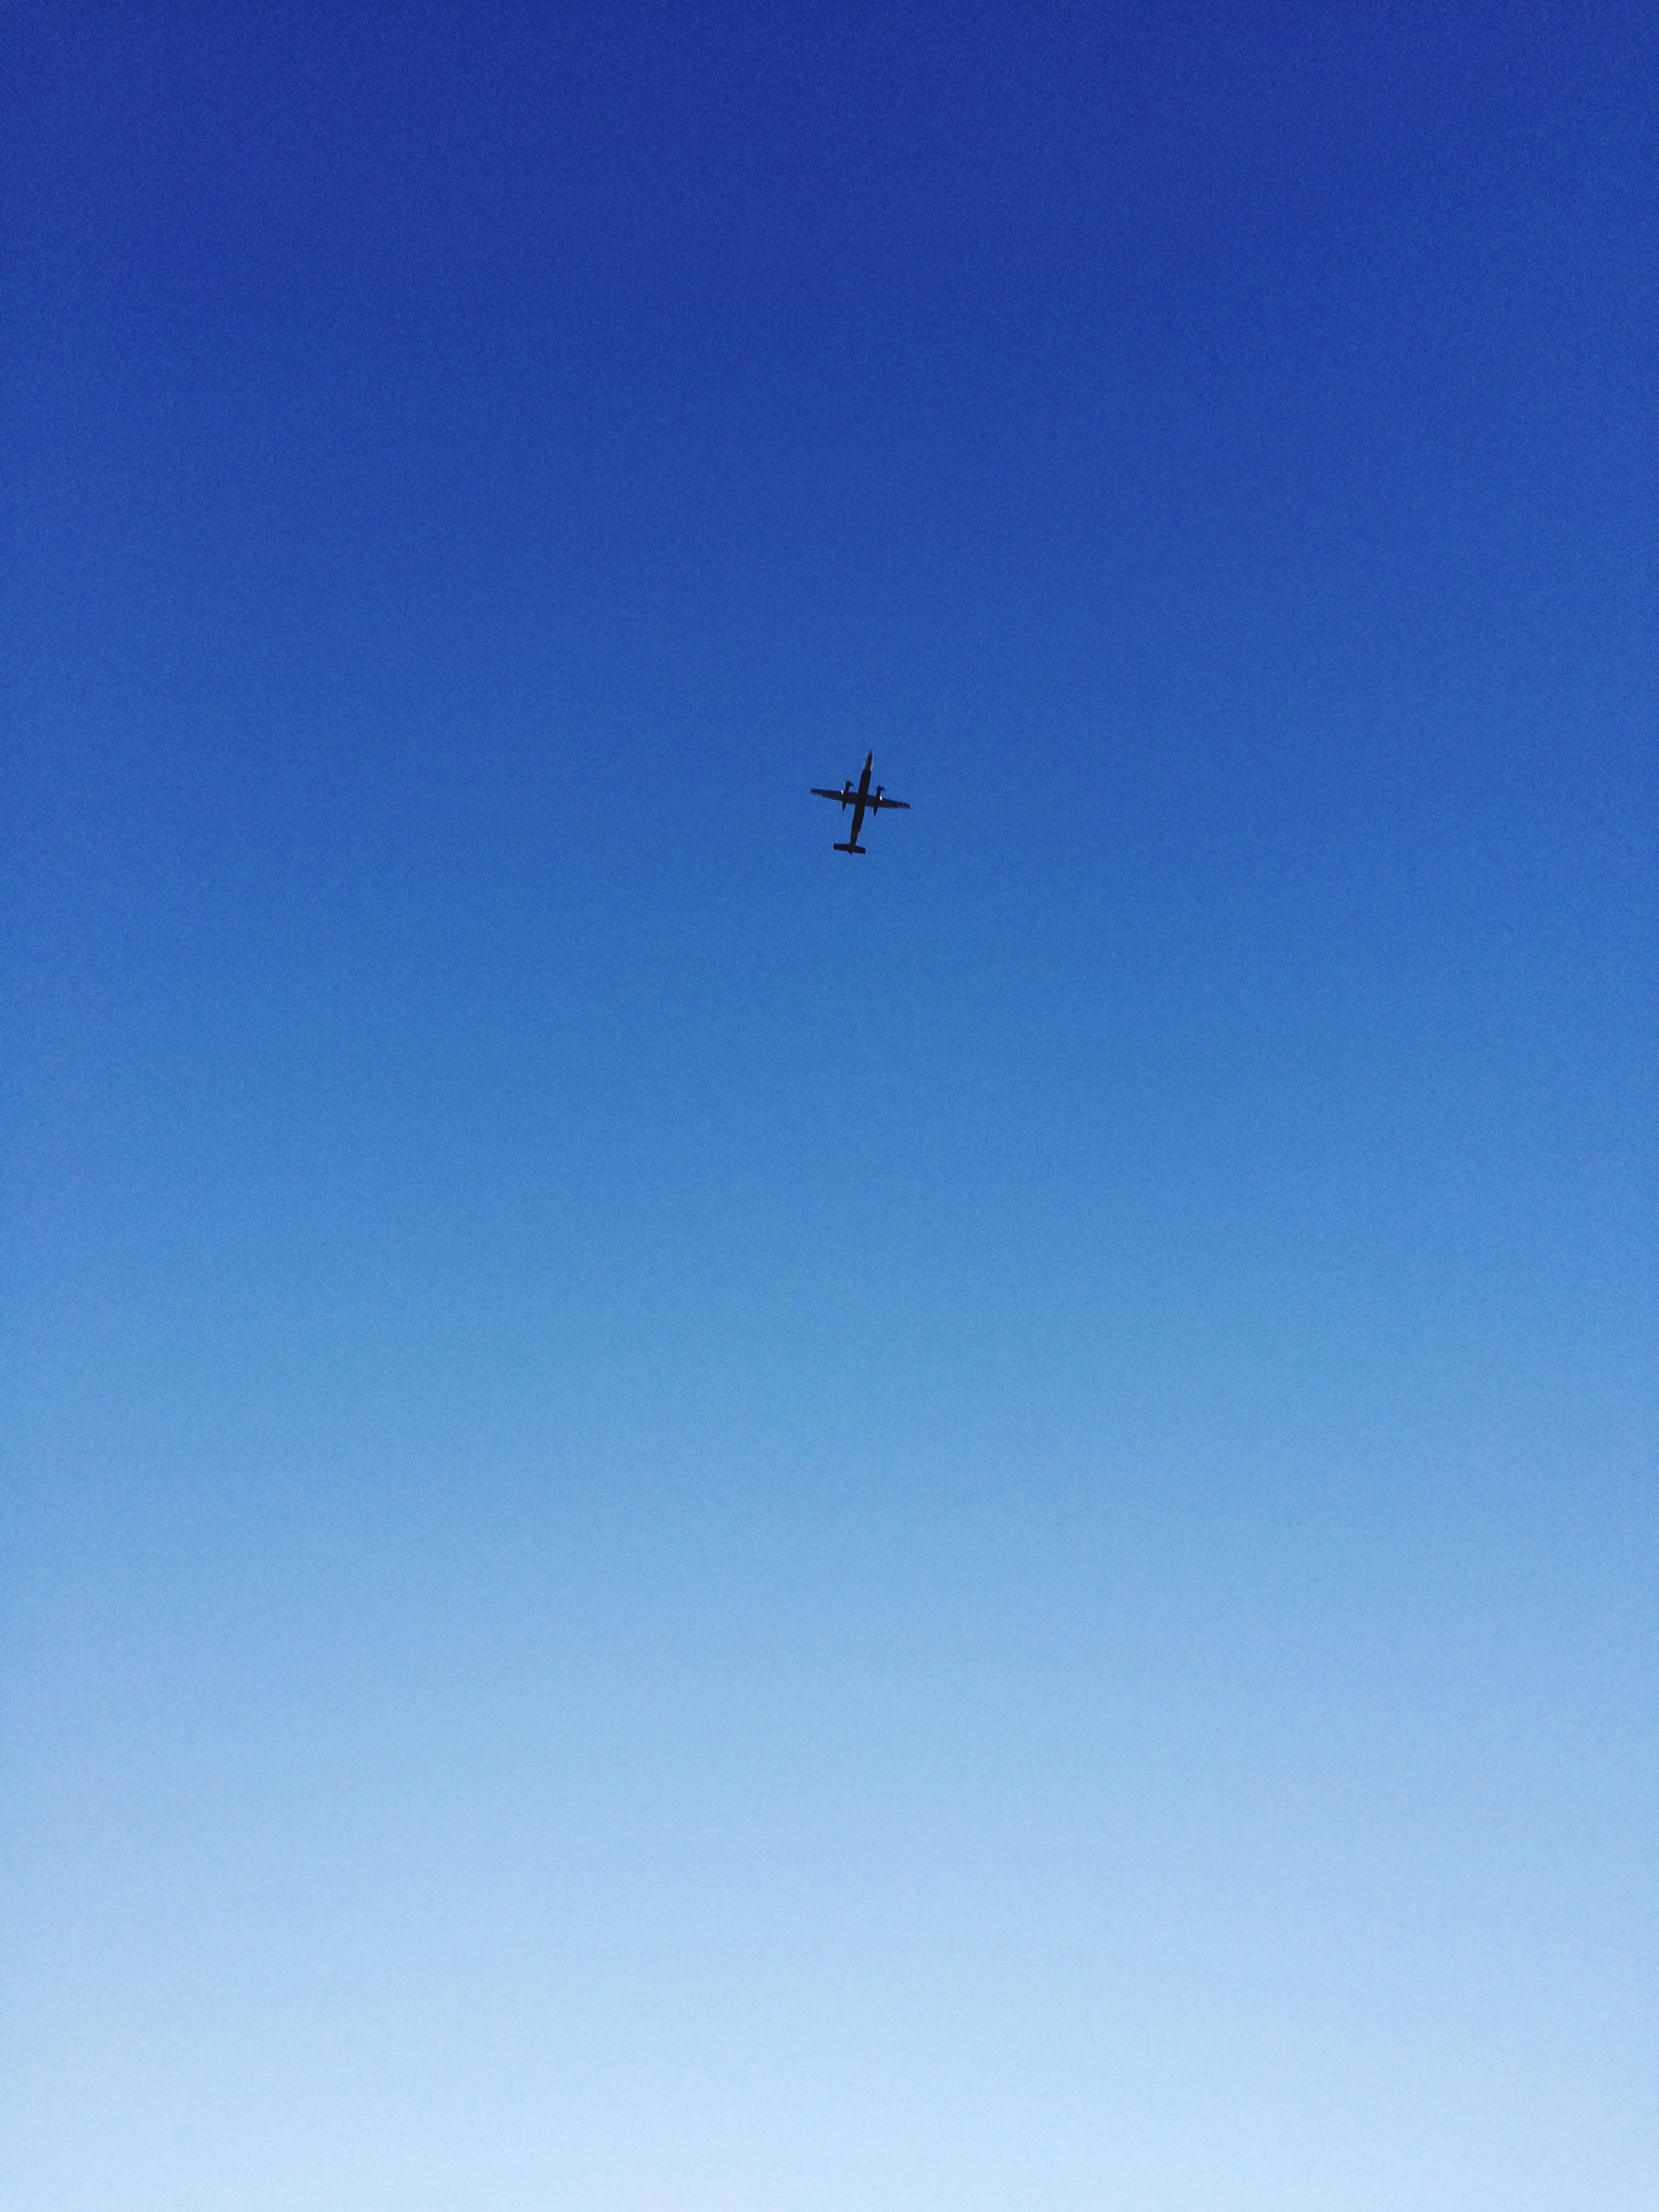 low angle view, blue, clear sky, flying, airplane, transportation, no people, outdoors, day, air vehicle, nature